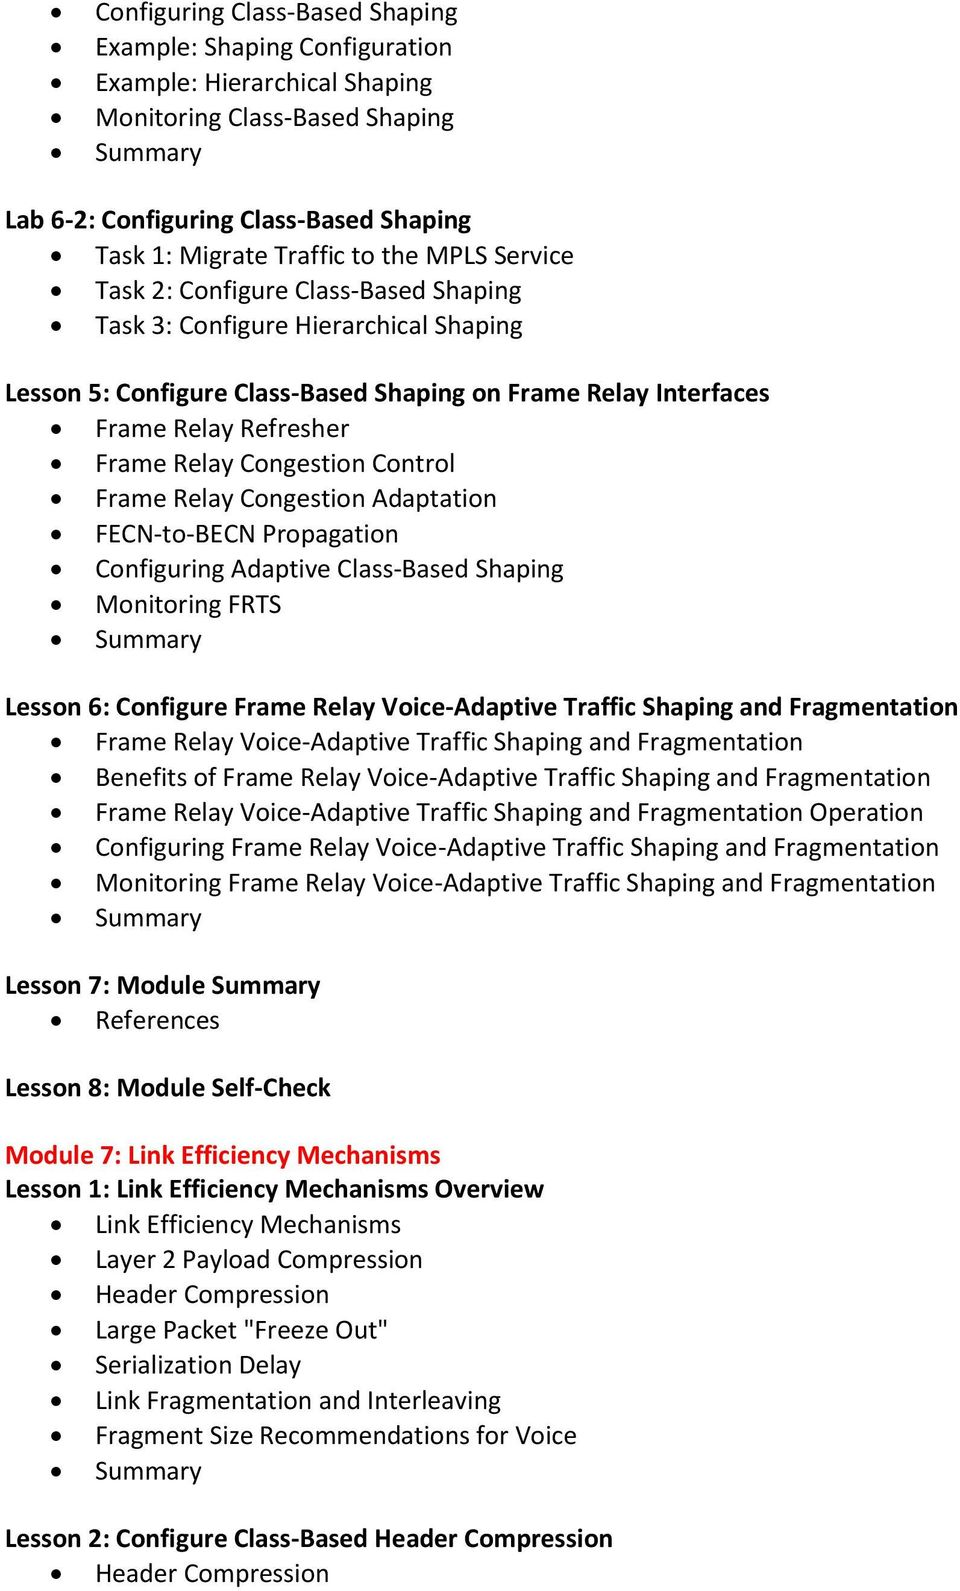 Congestion Control Frame Relay Congestion Adaptation FECN-to-BECN Propagation Configuring Adaptive Class-Based Shaping Monitoring FRTS Lesson 6: Configure Frame Relay Voice-Adaptive Traffic Shaping